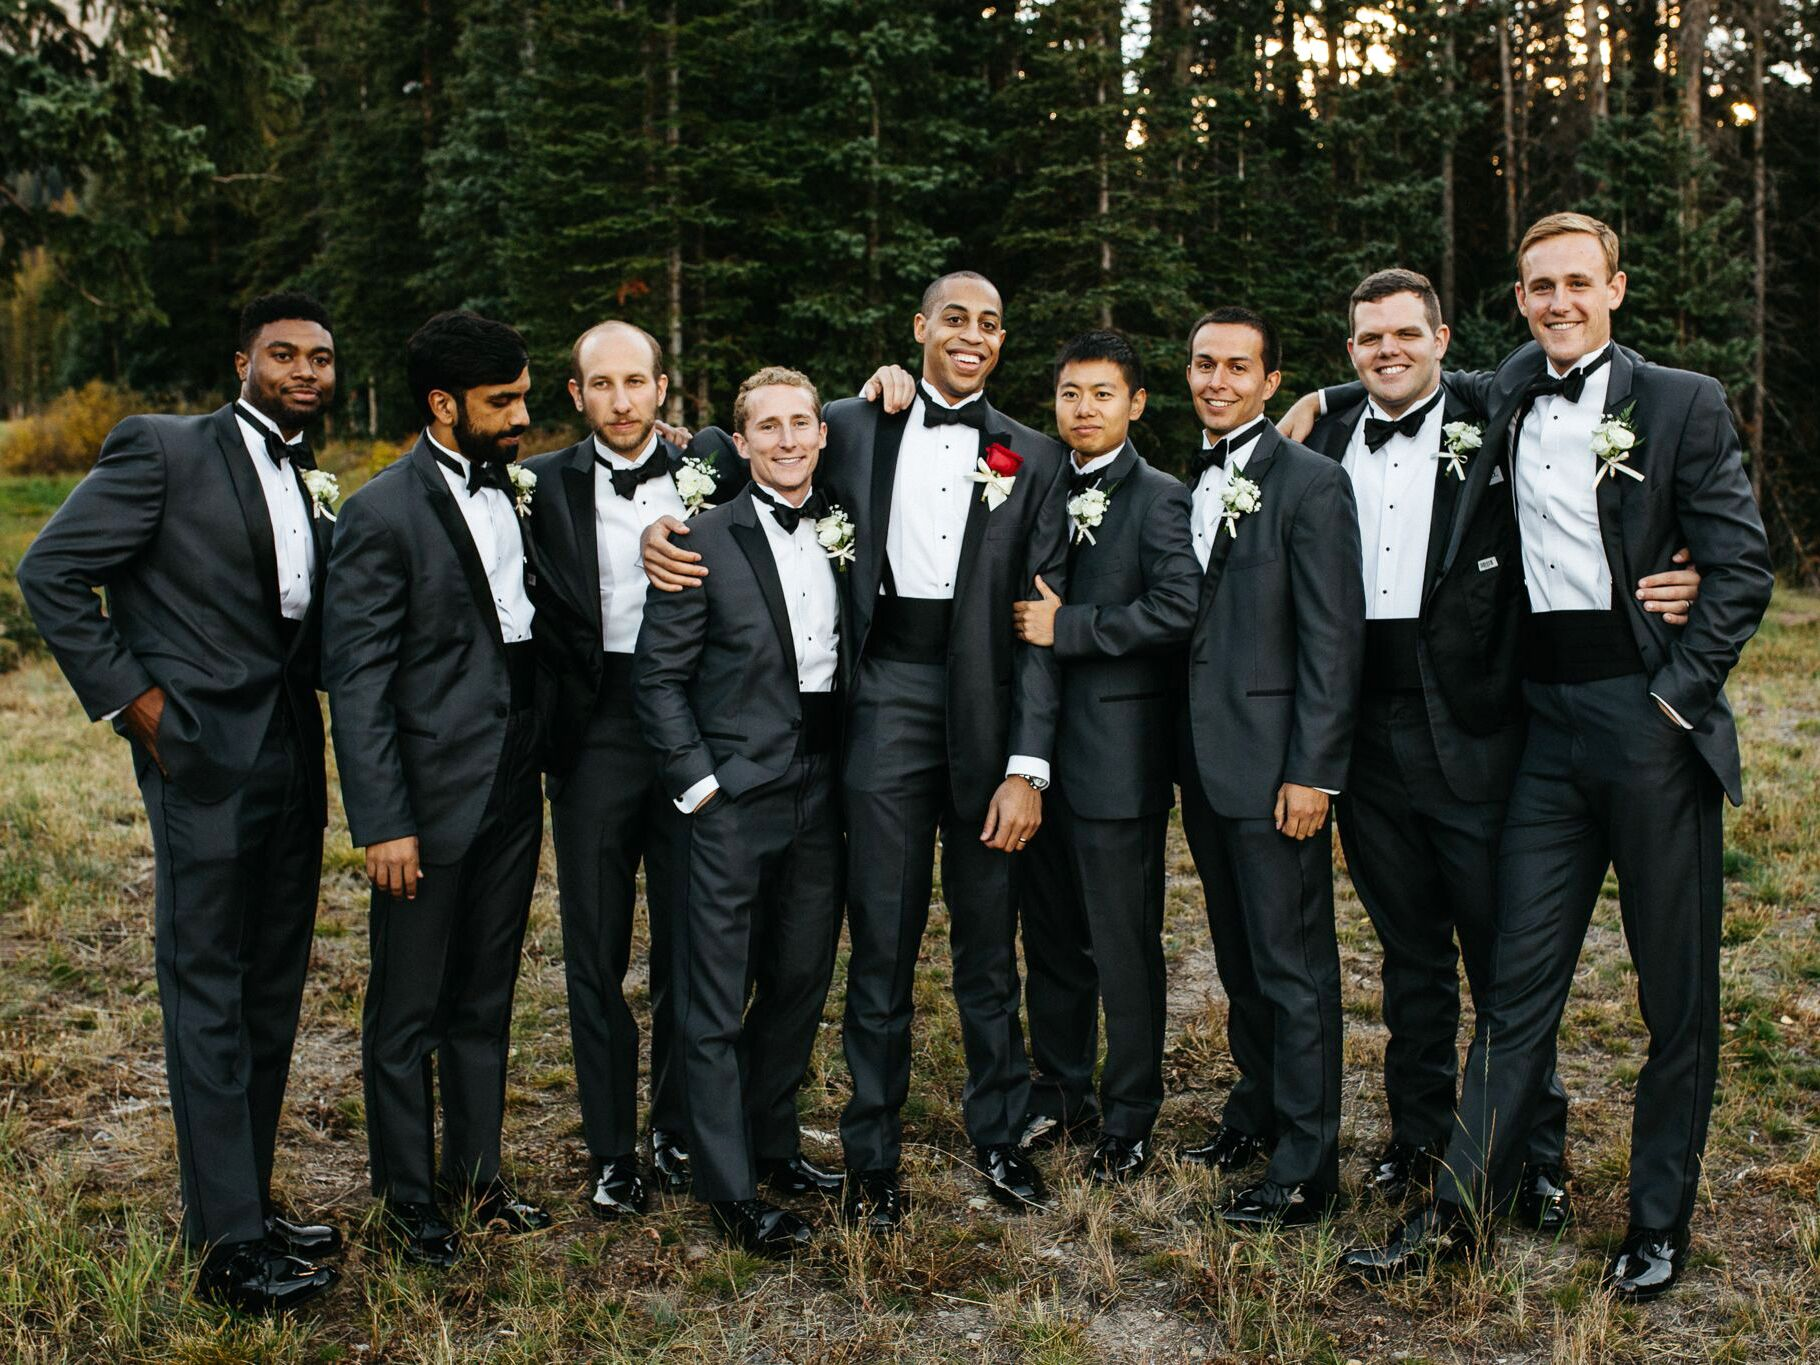 a complete list of groomsmen duties in detail